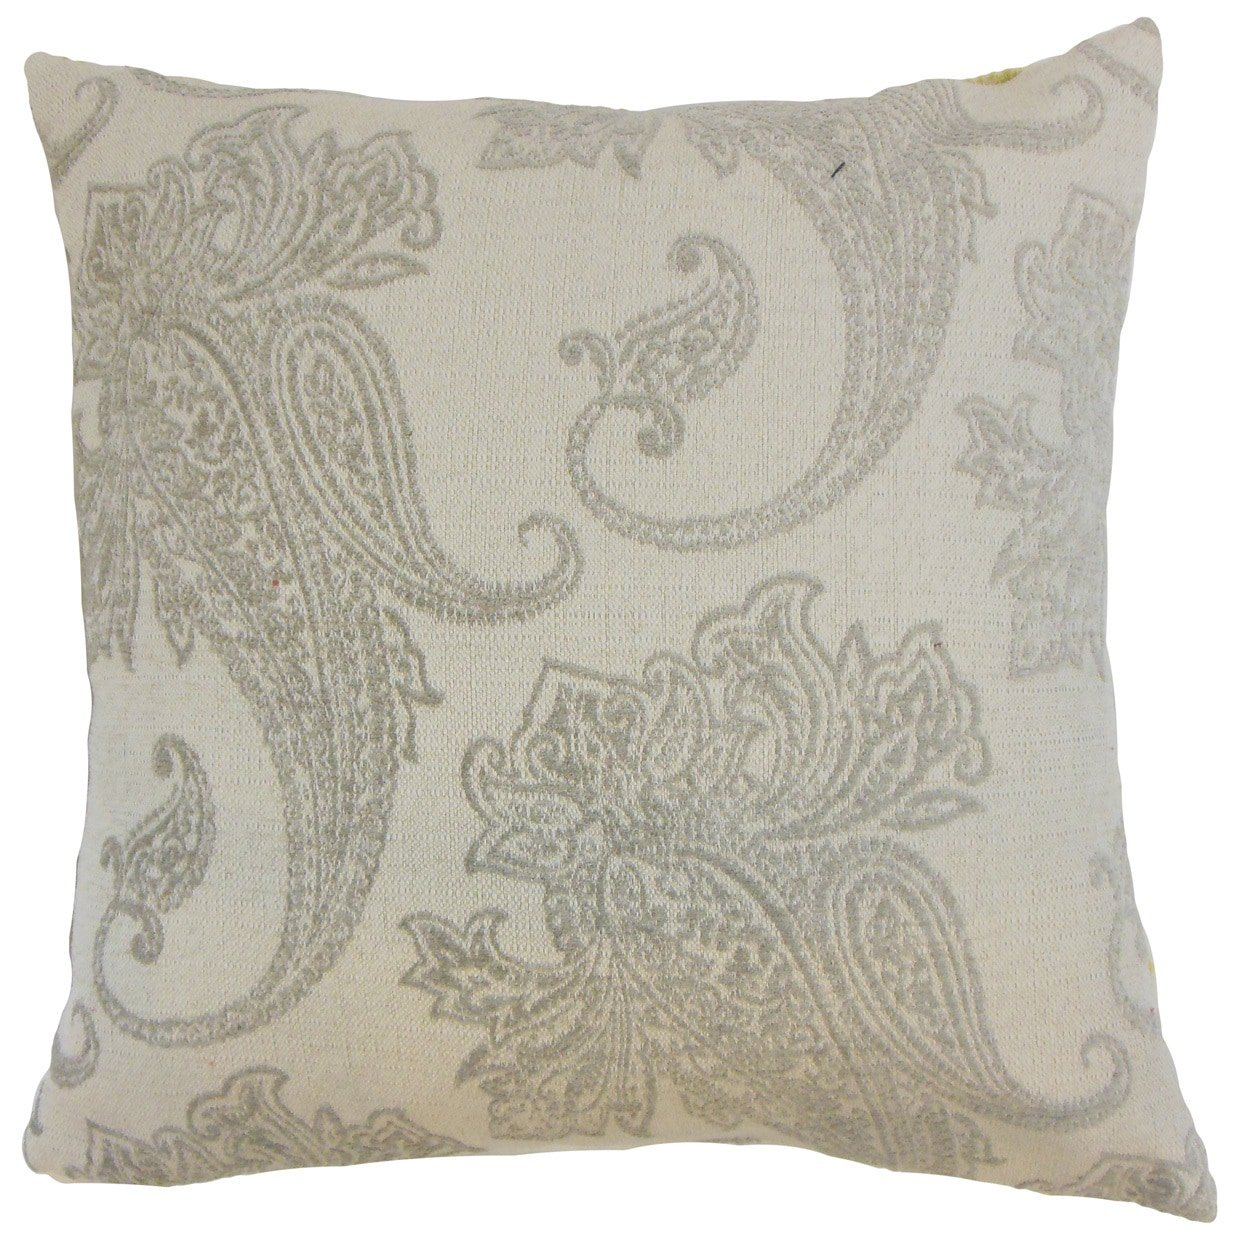 The Pillow Collection Galia Paisley Linen Down Filled Throw Pillow